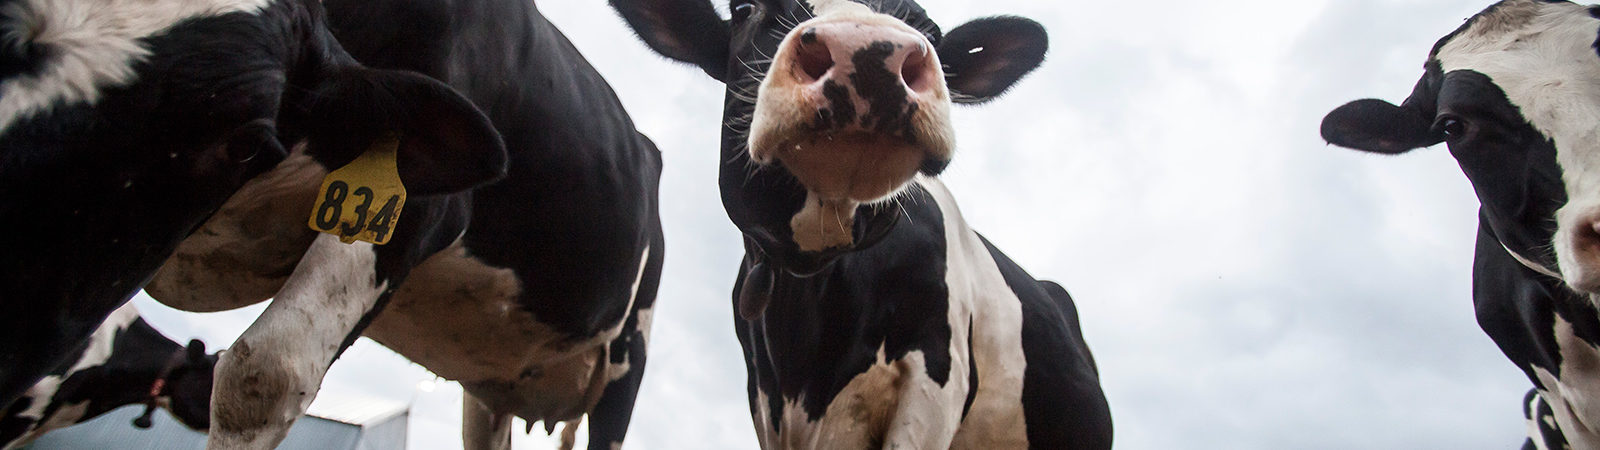 Photo of a holstein cow